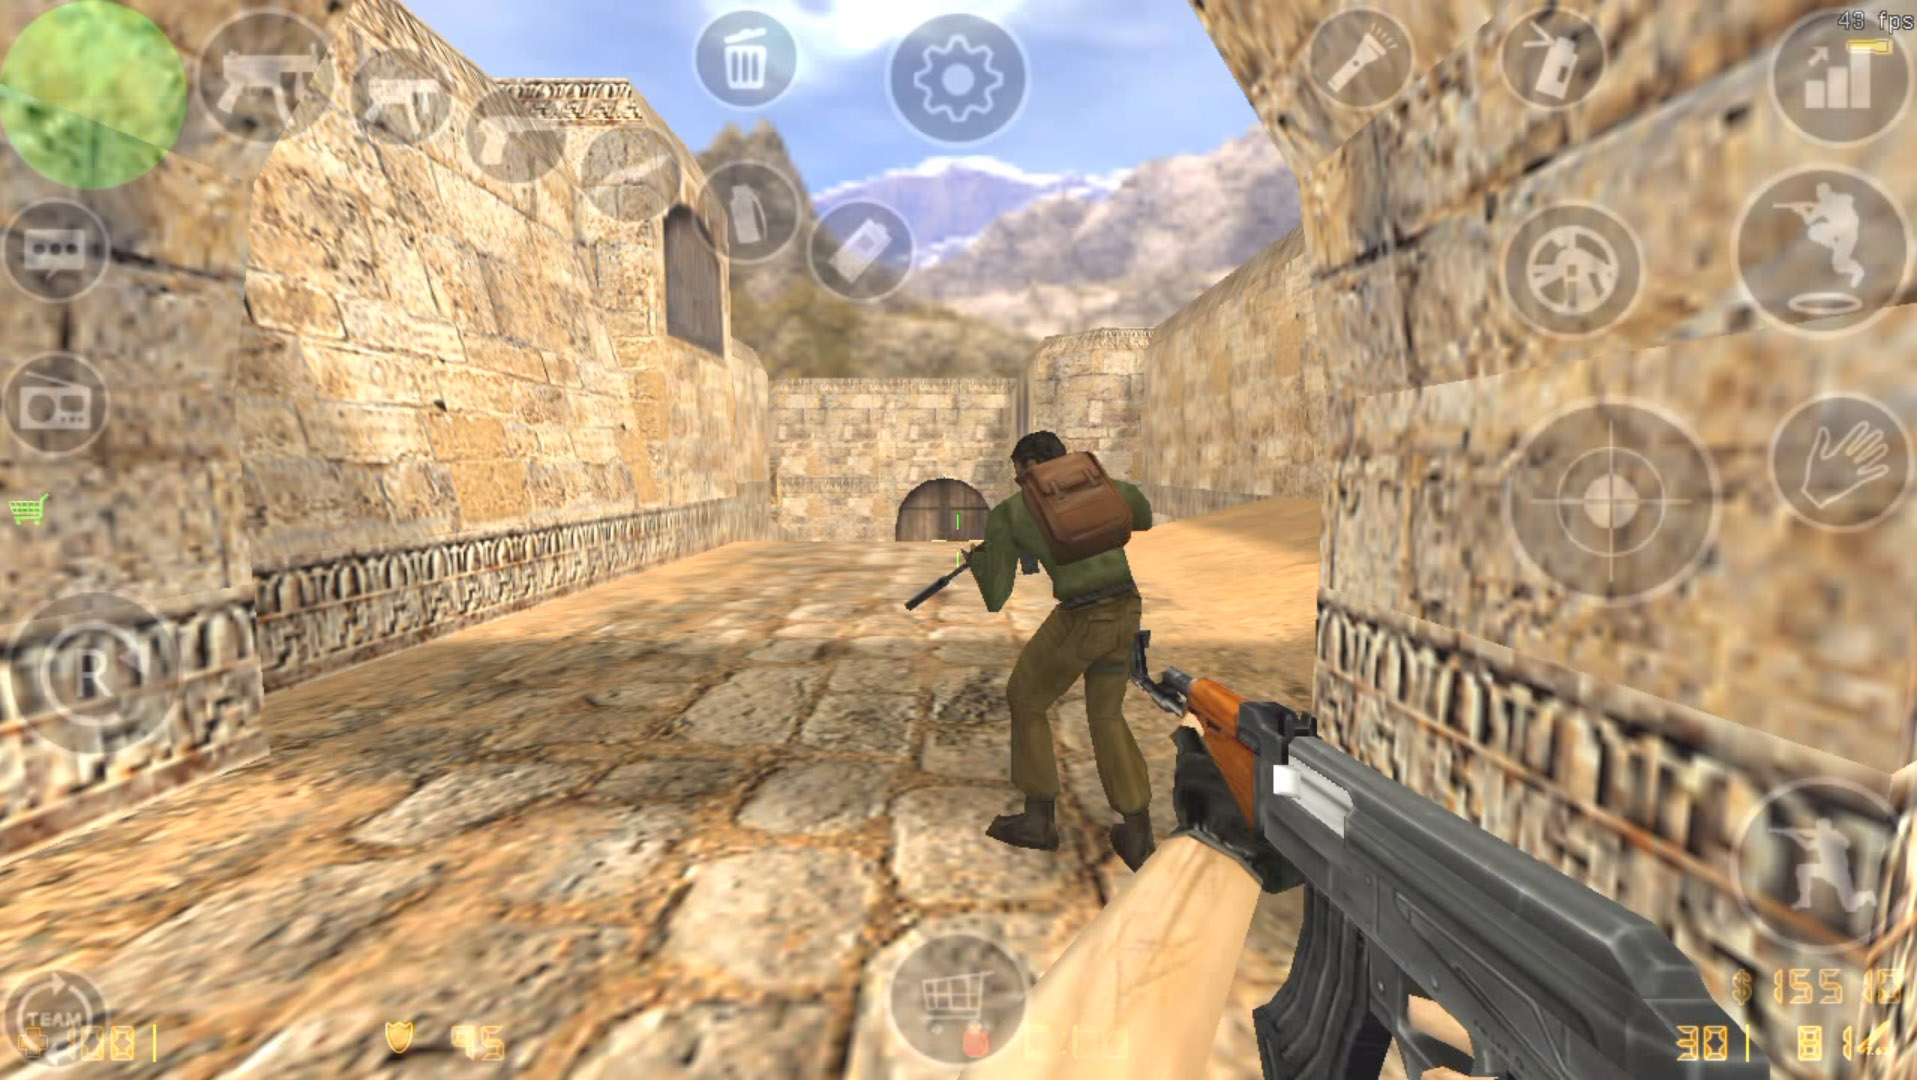 Counter Strike Full Game - download.cnet.com